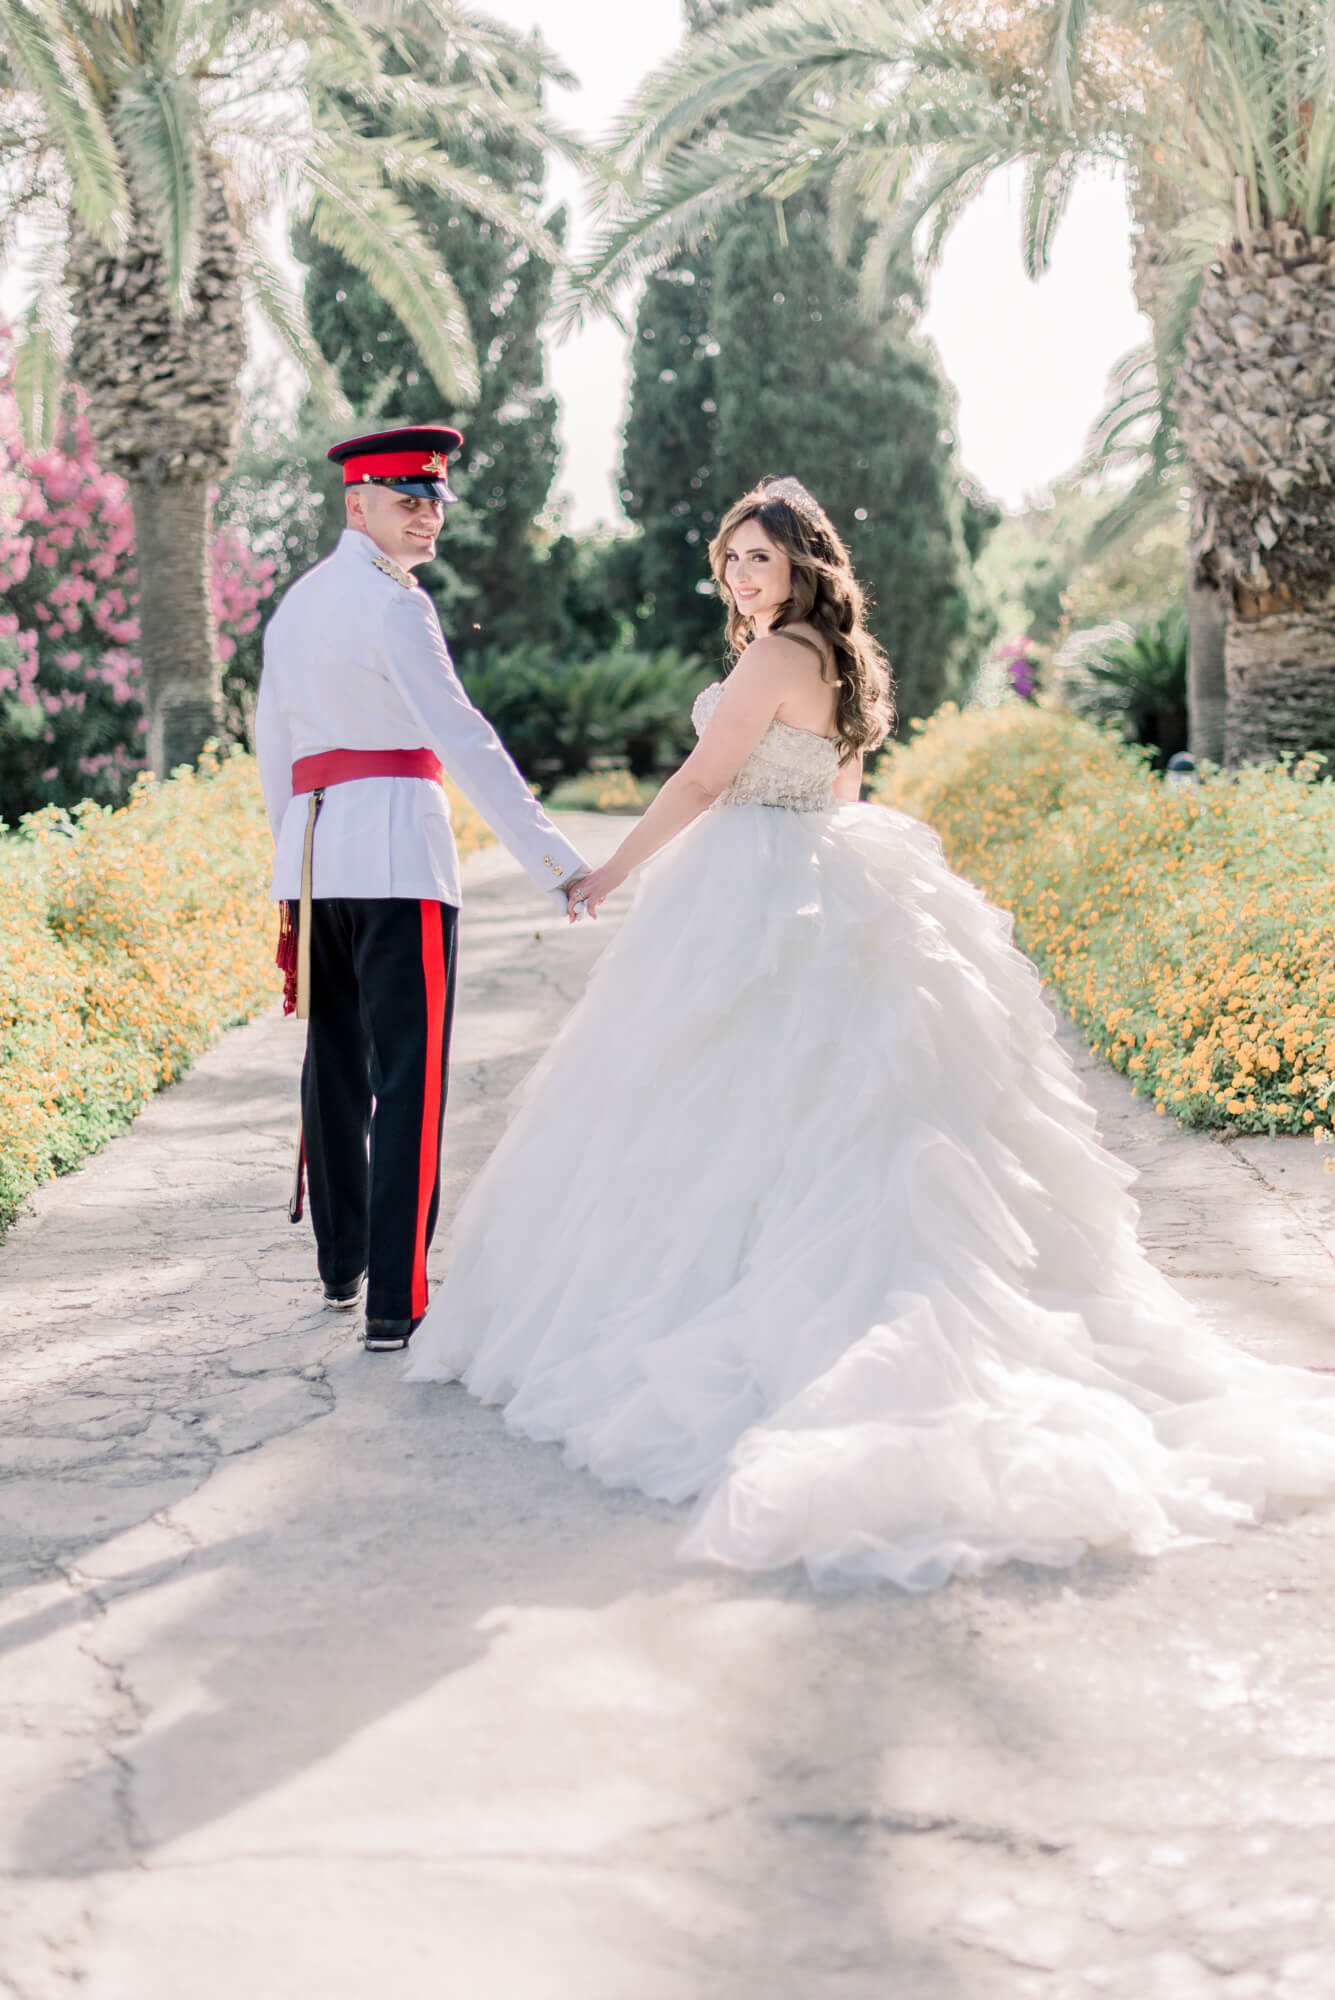 Practical tips on how to choose your wedding photographer. In Photo: bride and groom walking away and looking back. Bride wearing an Randy Fenoli princess style ball gown tulle wedding dress and groom wearing a Malta full military outfit. Shot at Search Results Web results Ir-Razzett L-Abjad in Malta by fine art destination wedding photographer Cristina Ilao | www.cristinailao.com